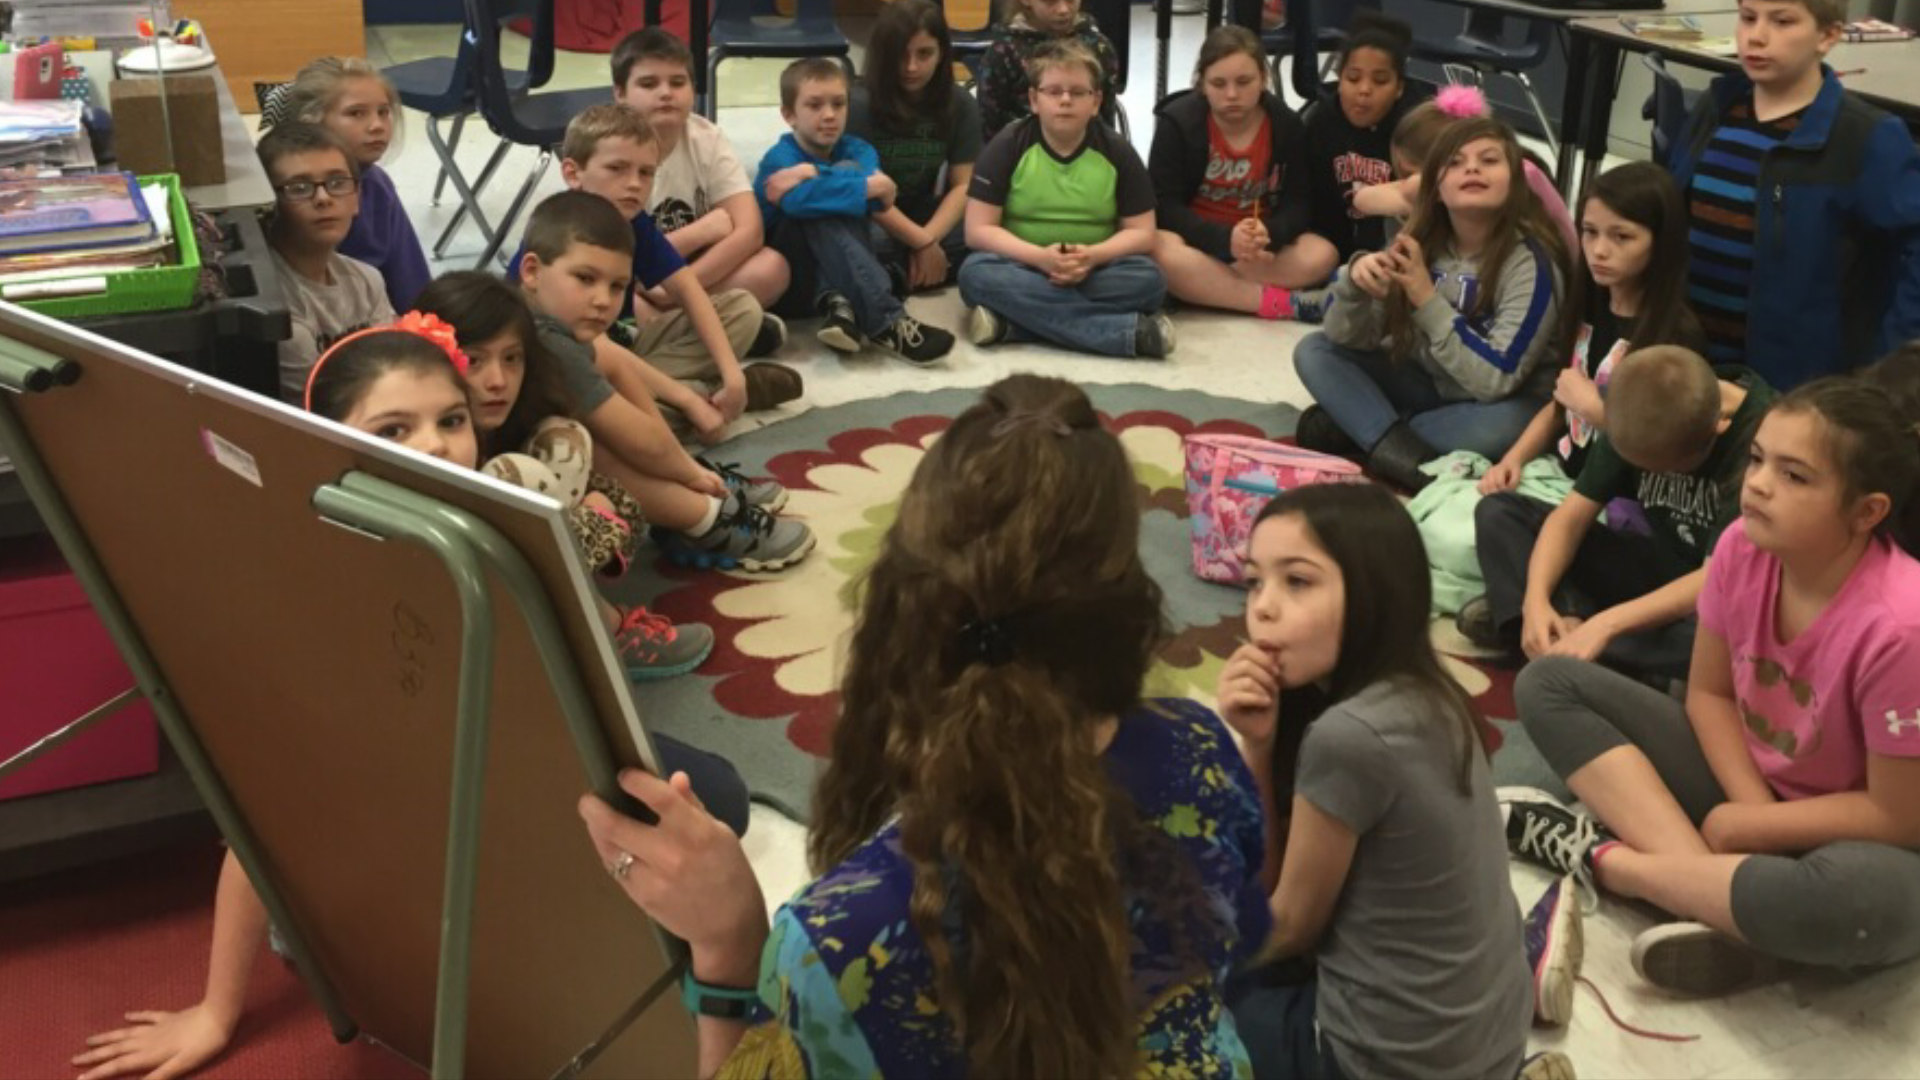 Mrs.Pridemore sitting in the floor discussing a story with students.